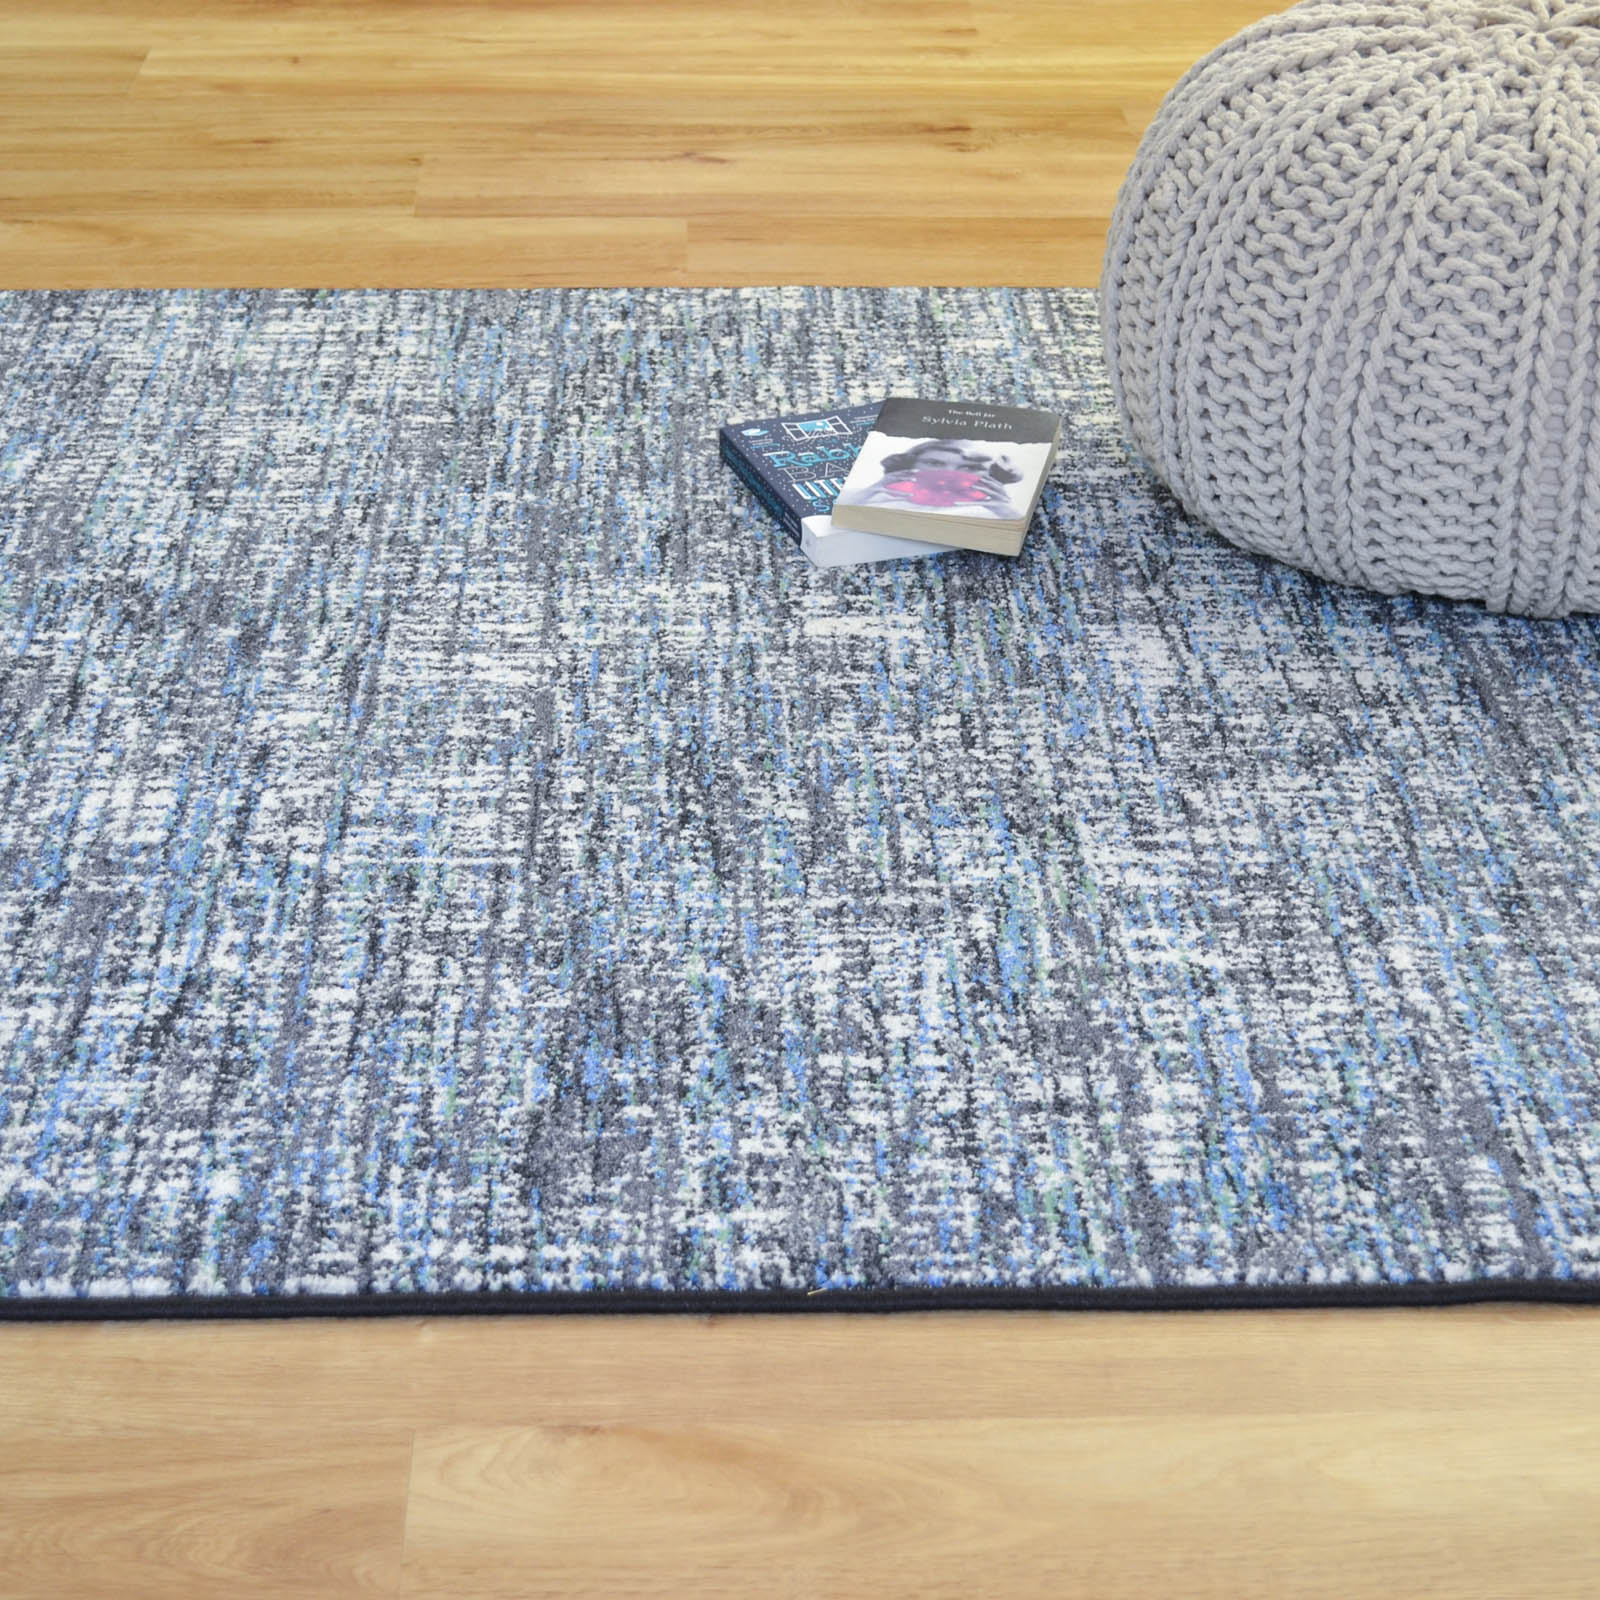 Woodstock Rugs 32219 6258 in Grey and Blue